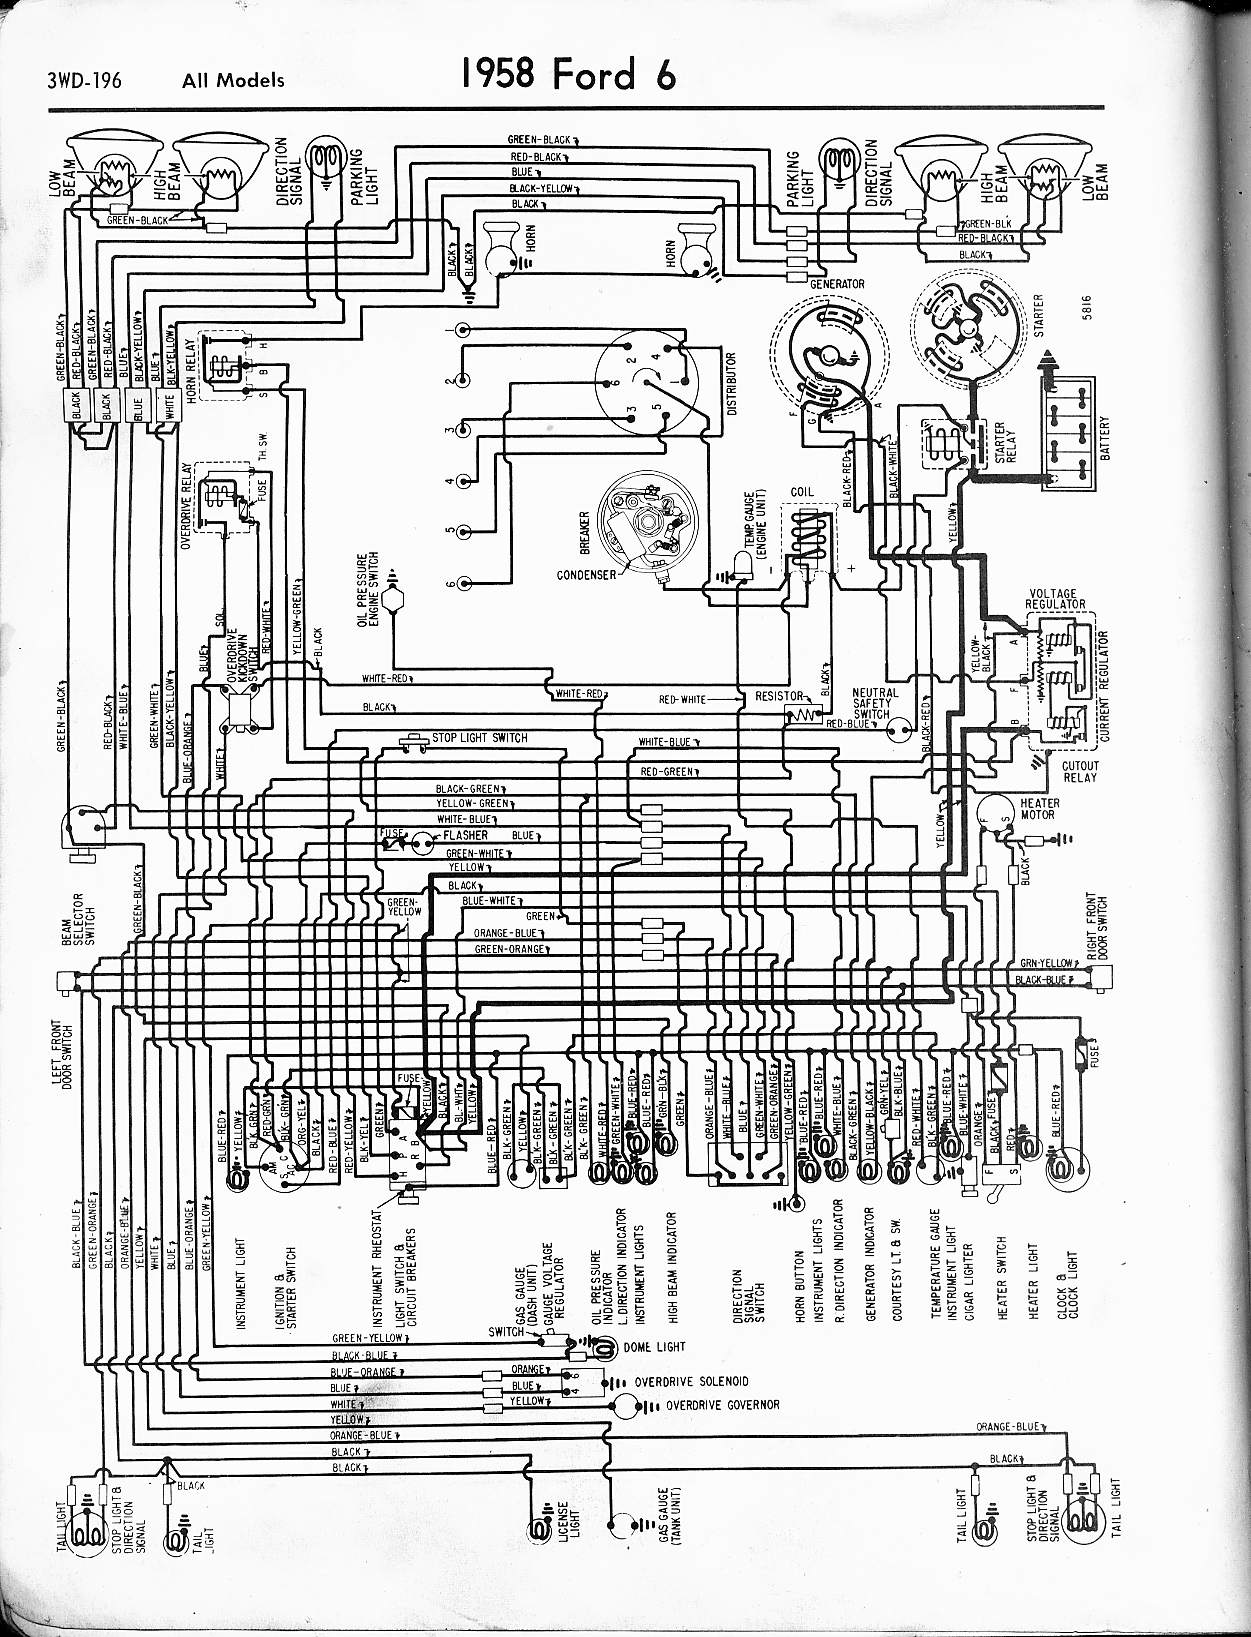 57 ford pickup schematic auto electrical wiring diagram u2022 rh 6weeks co uk